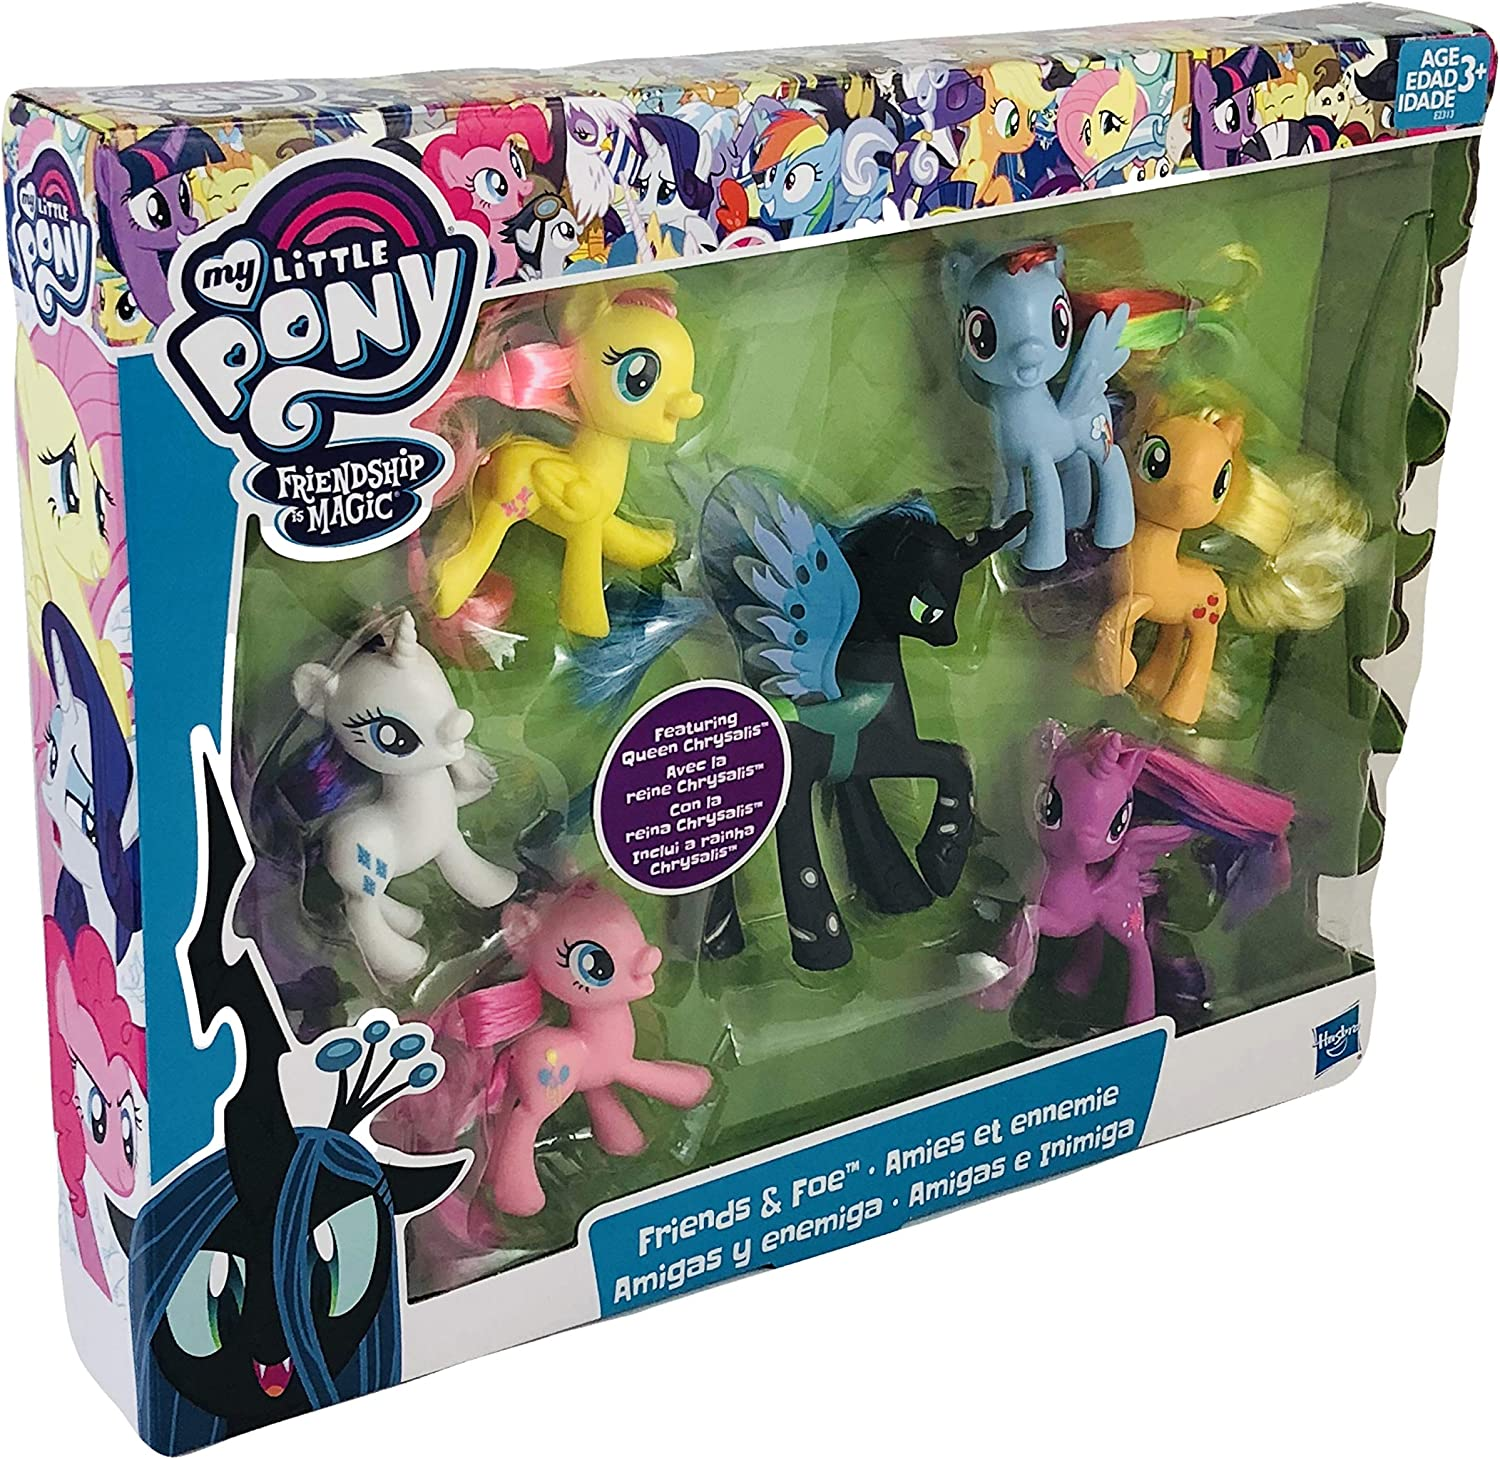 Featuring Queen Chrysalis My Little Pony Friendship Is Magic Friends Foe Action Figures